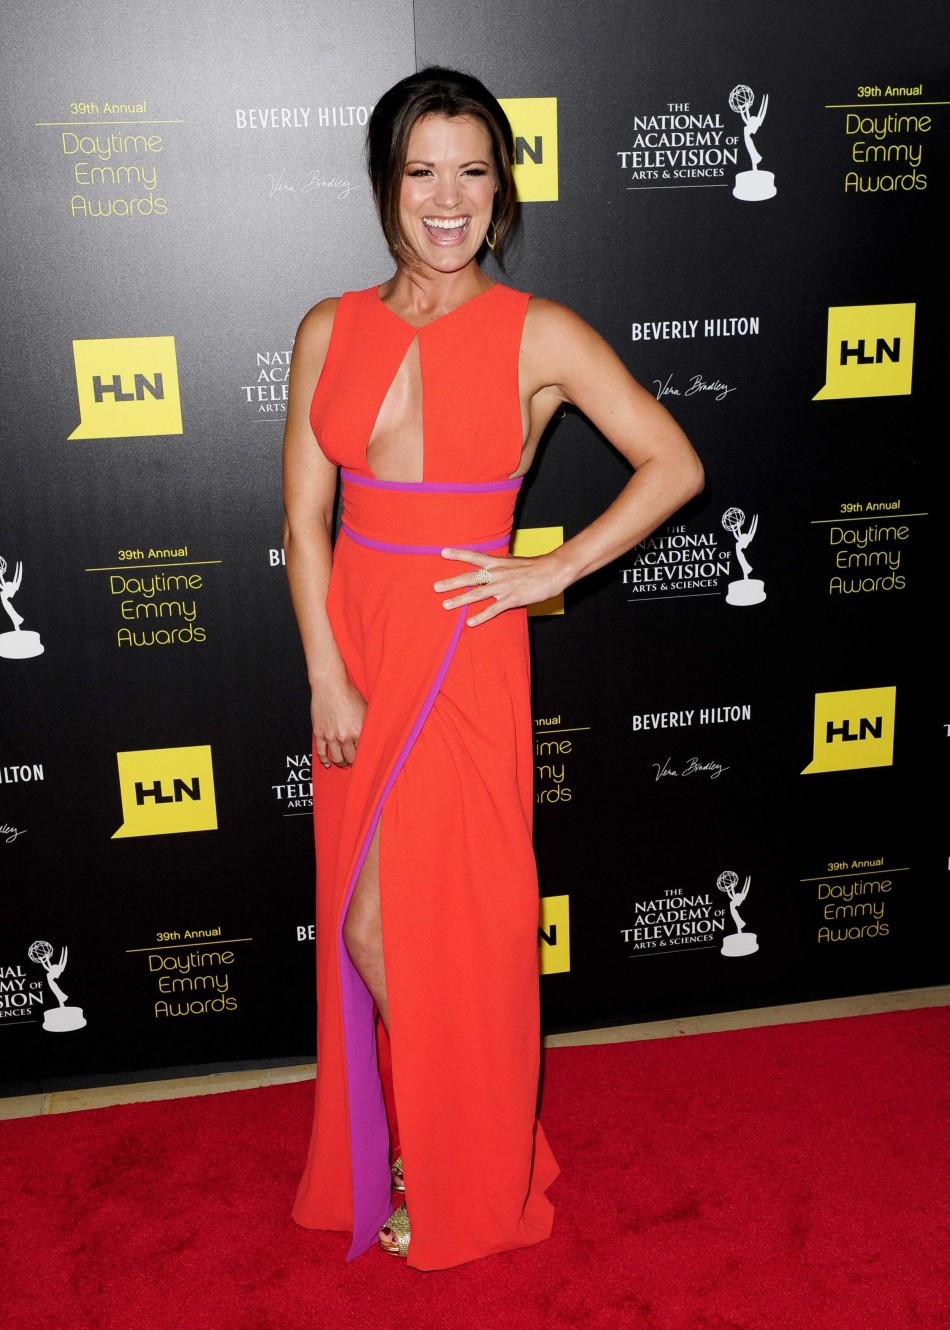 Melissa Claire Egan arrives at the 39th Daytime Emmy Awards in Beverly Hills